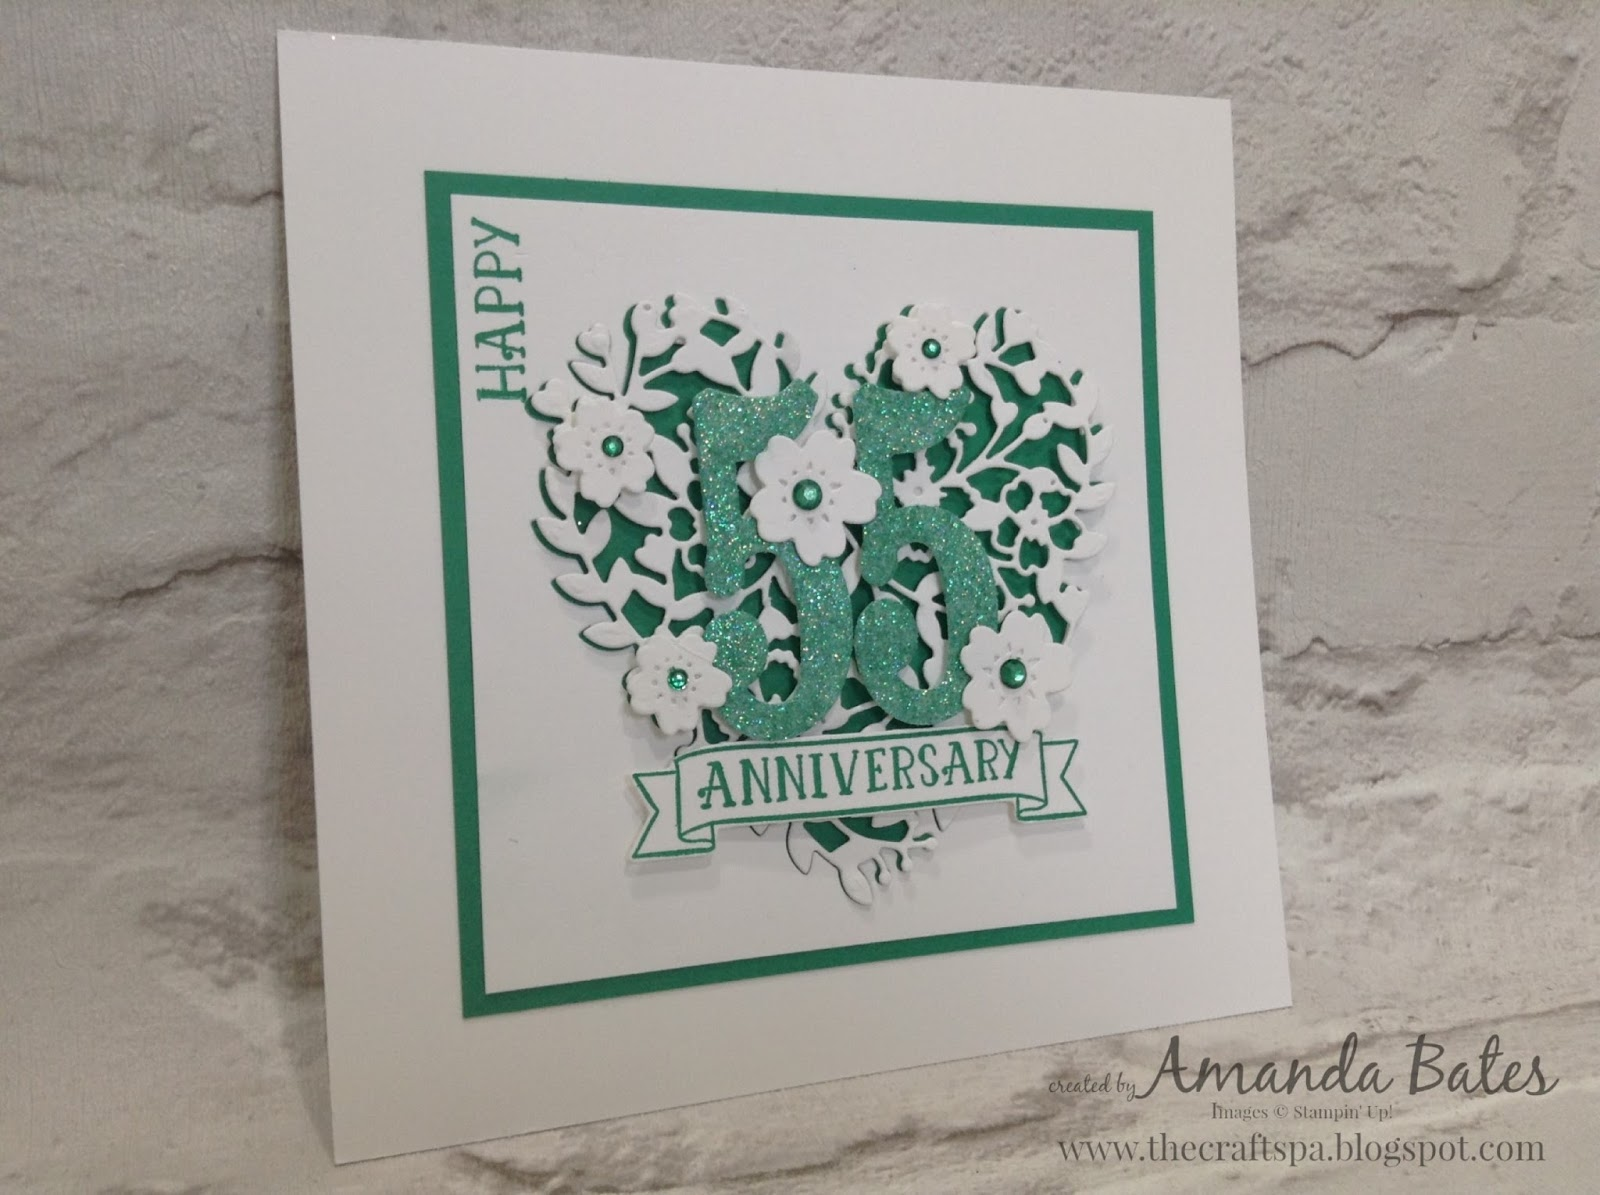 The craft spa stampin up! uk independent demonstrator : emerald